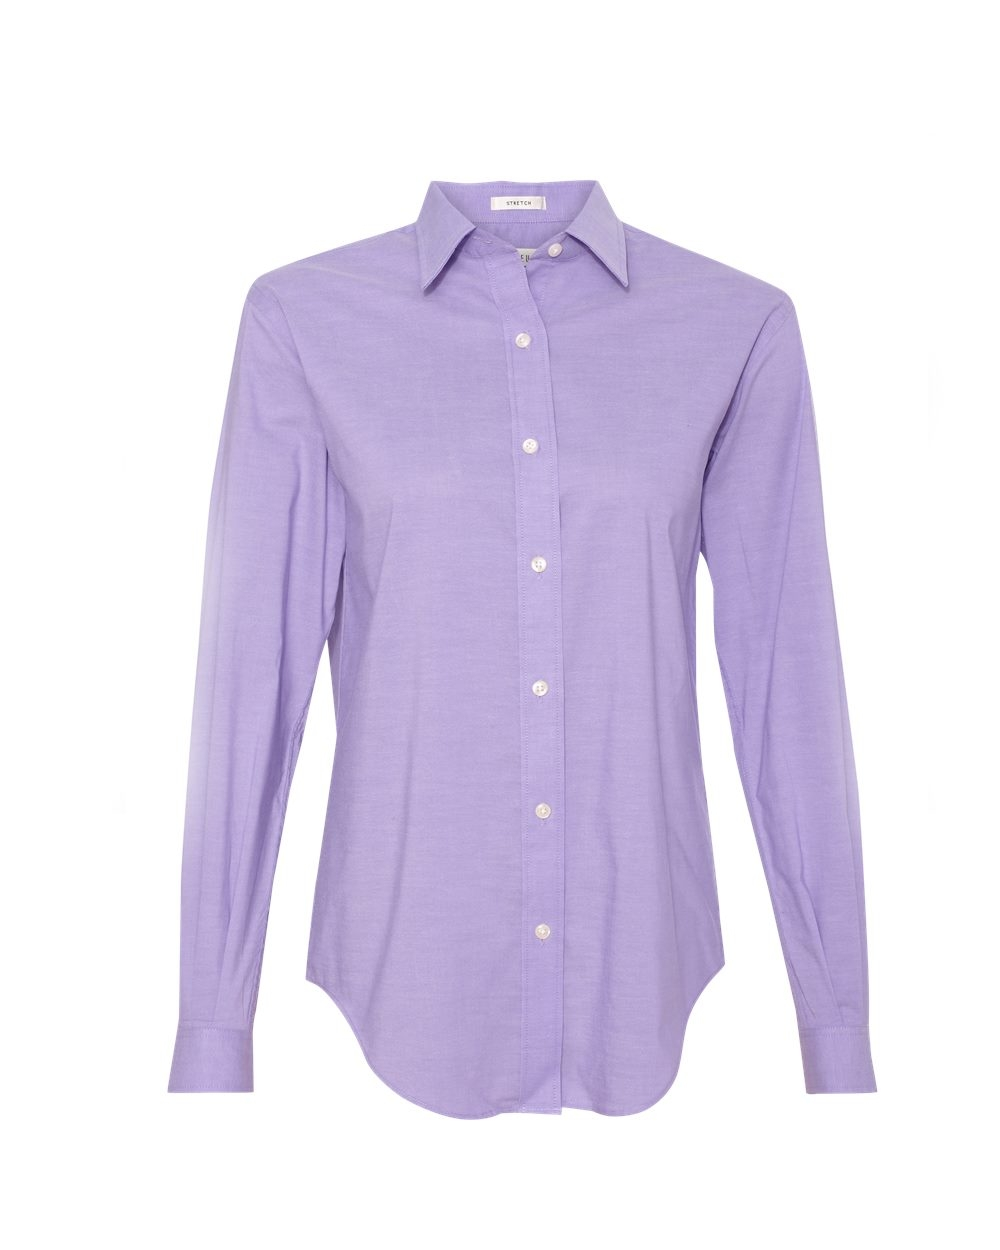 Van Heusen - 13v0238 Van Heusen - Ladies' Stretch Pinpoint Spread Collar Shirt